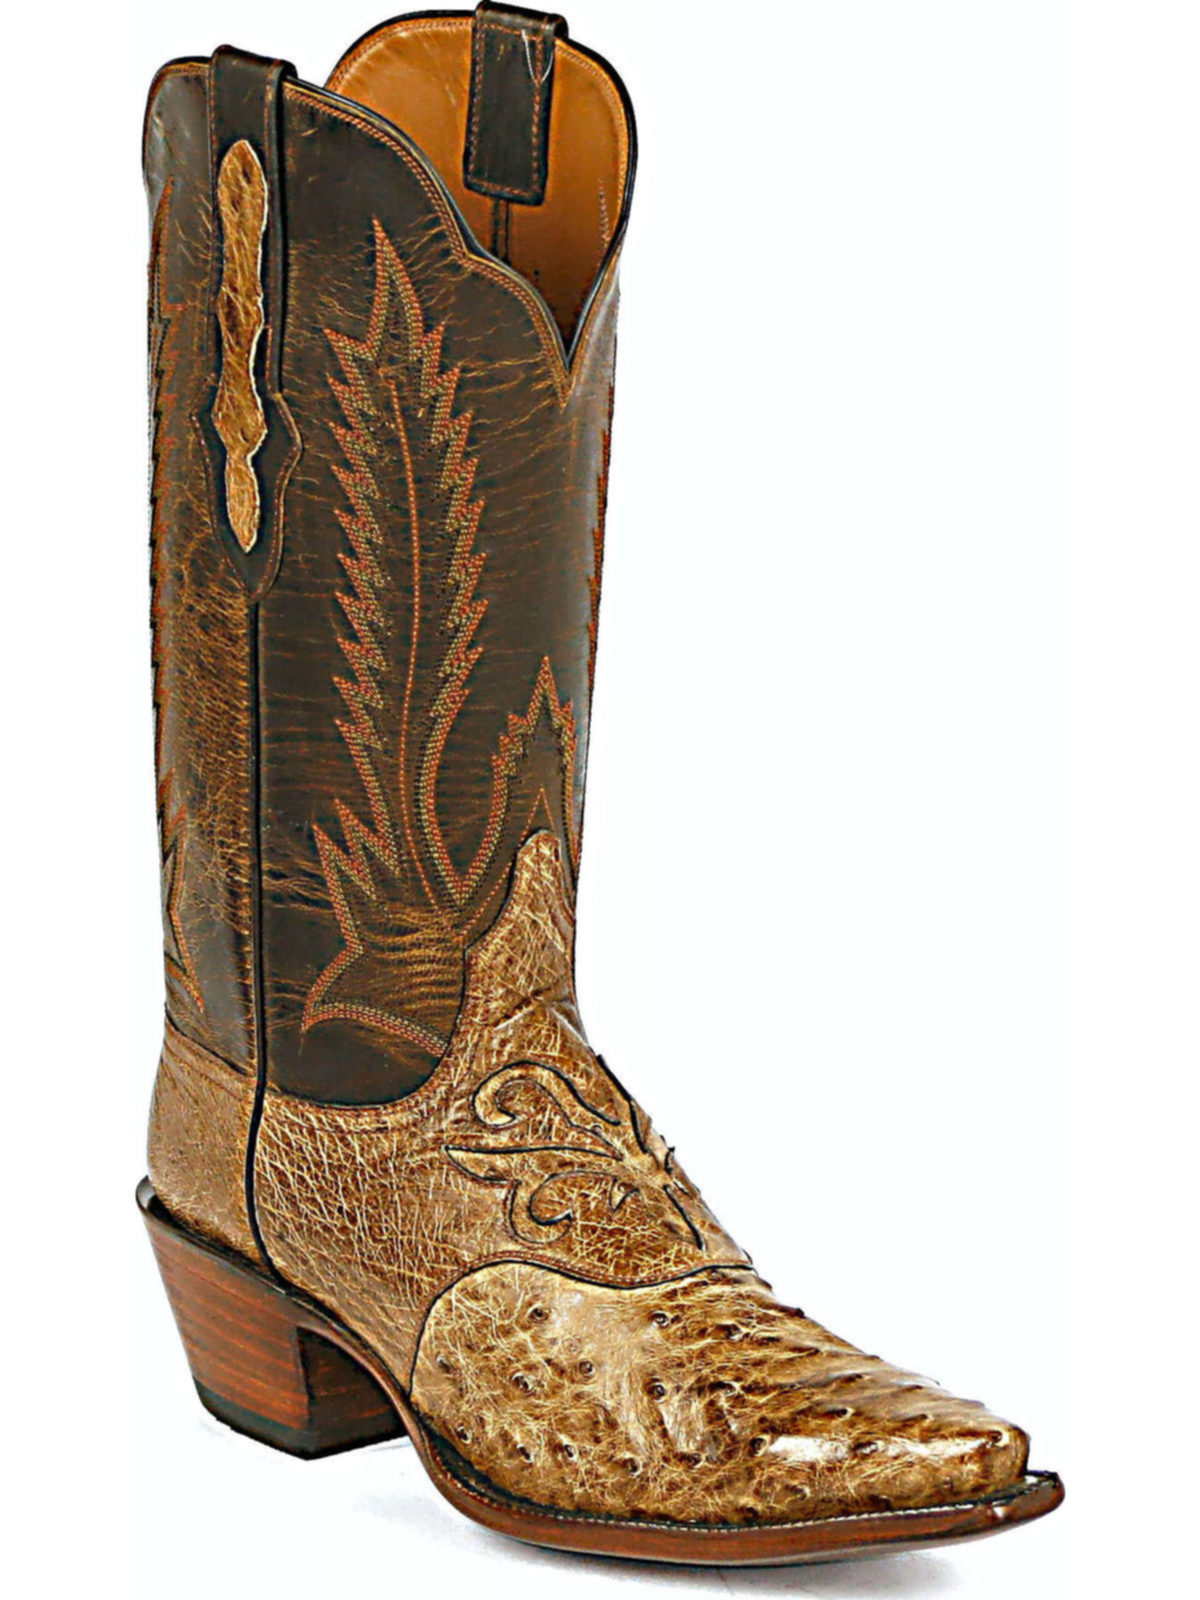 Bootamerica Black Jack Boots Feather Stitch Full Quill